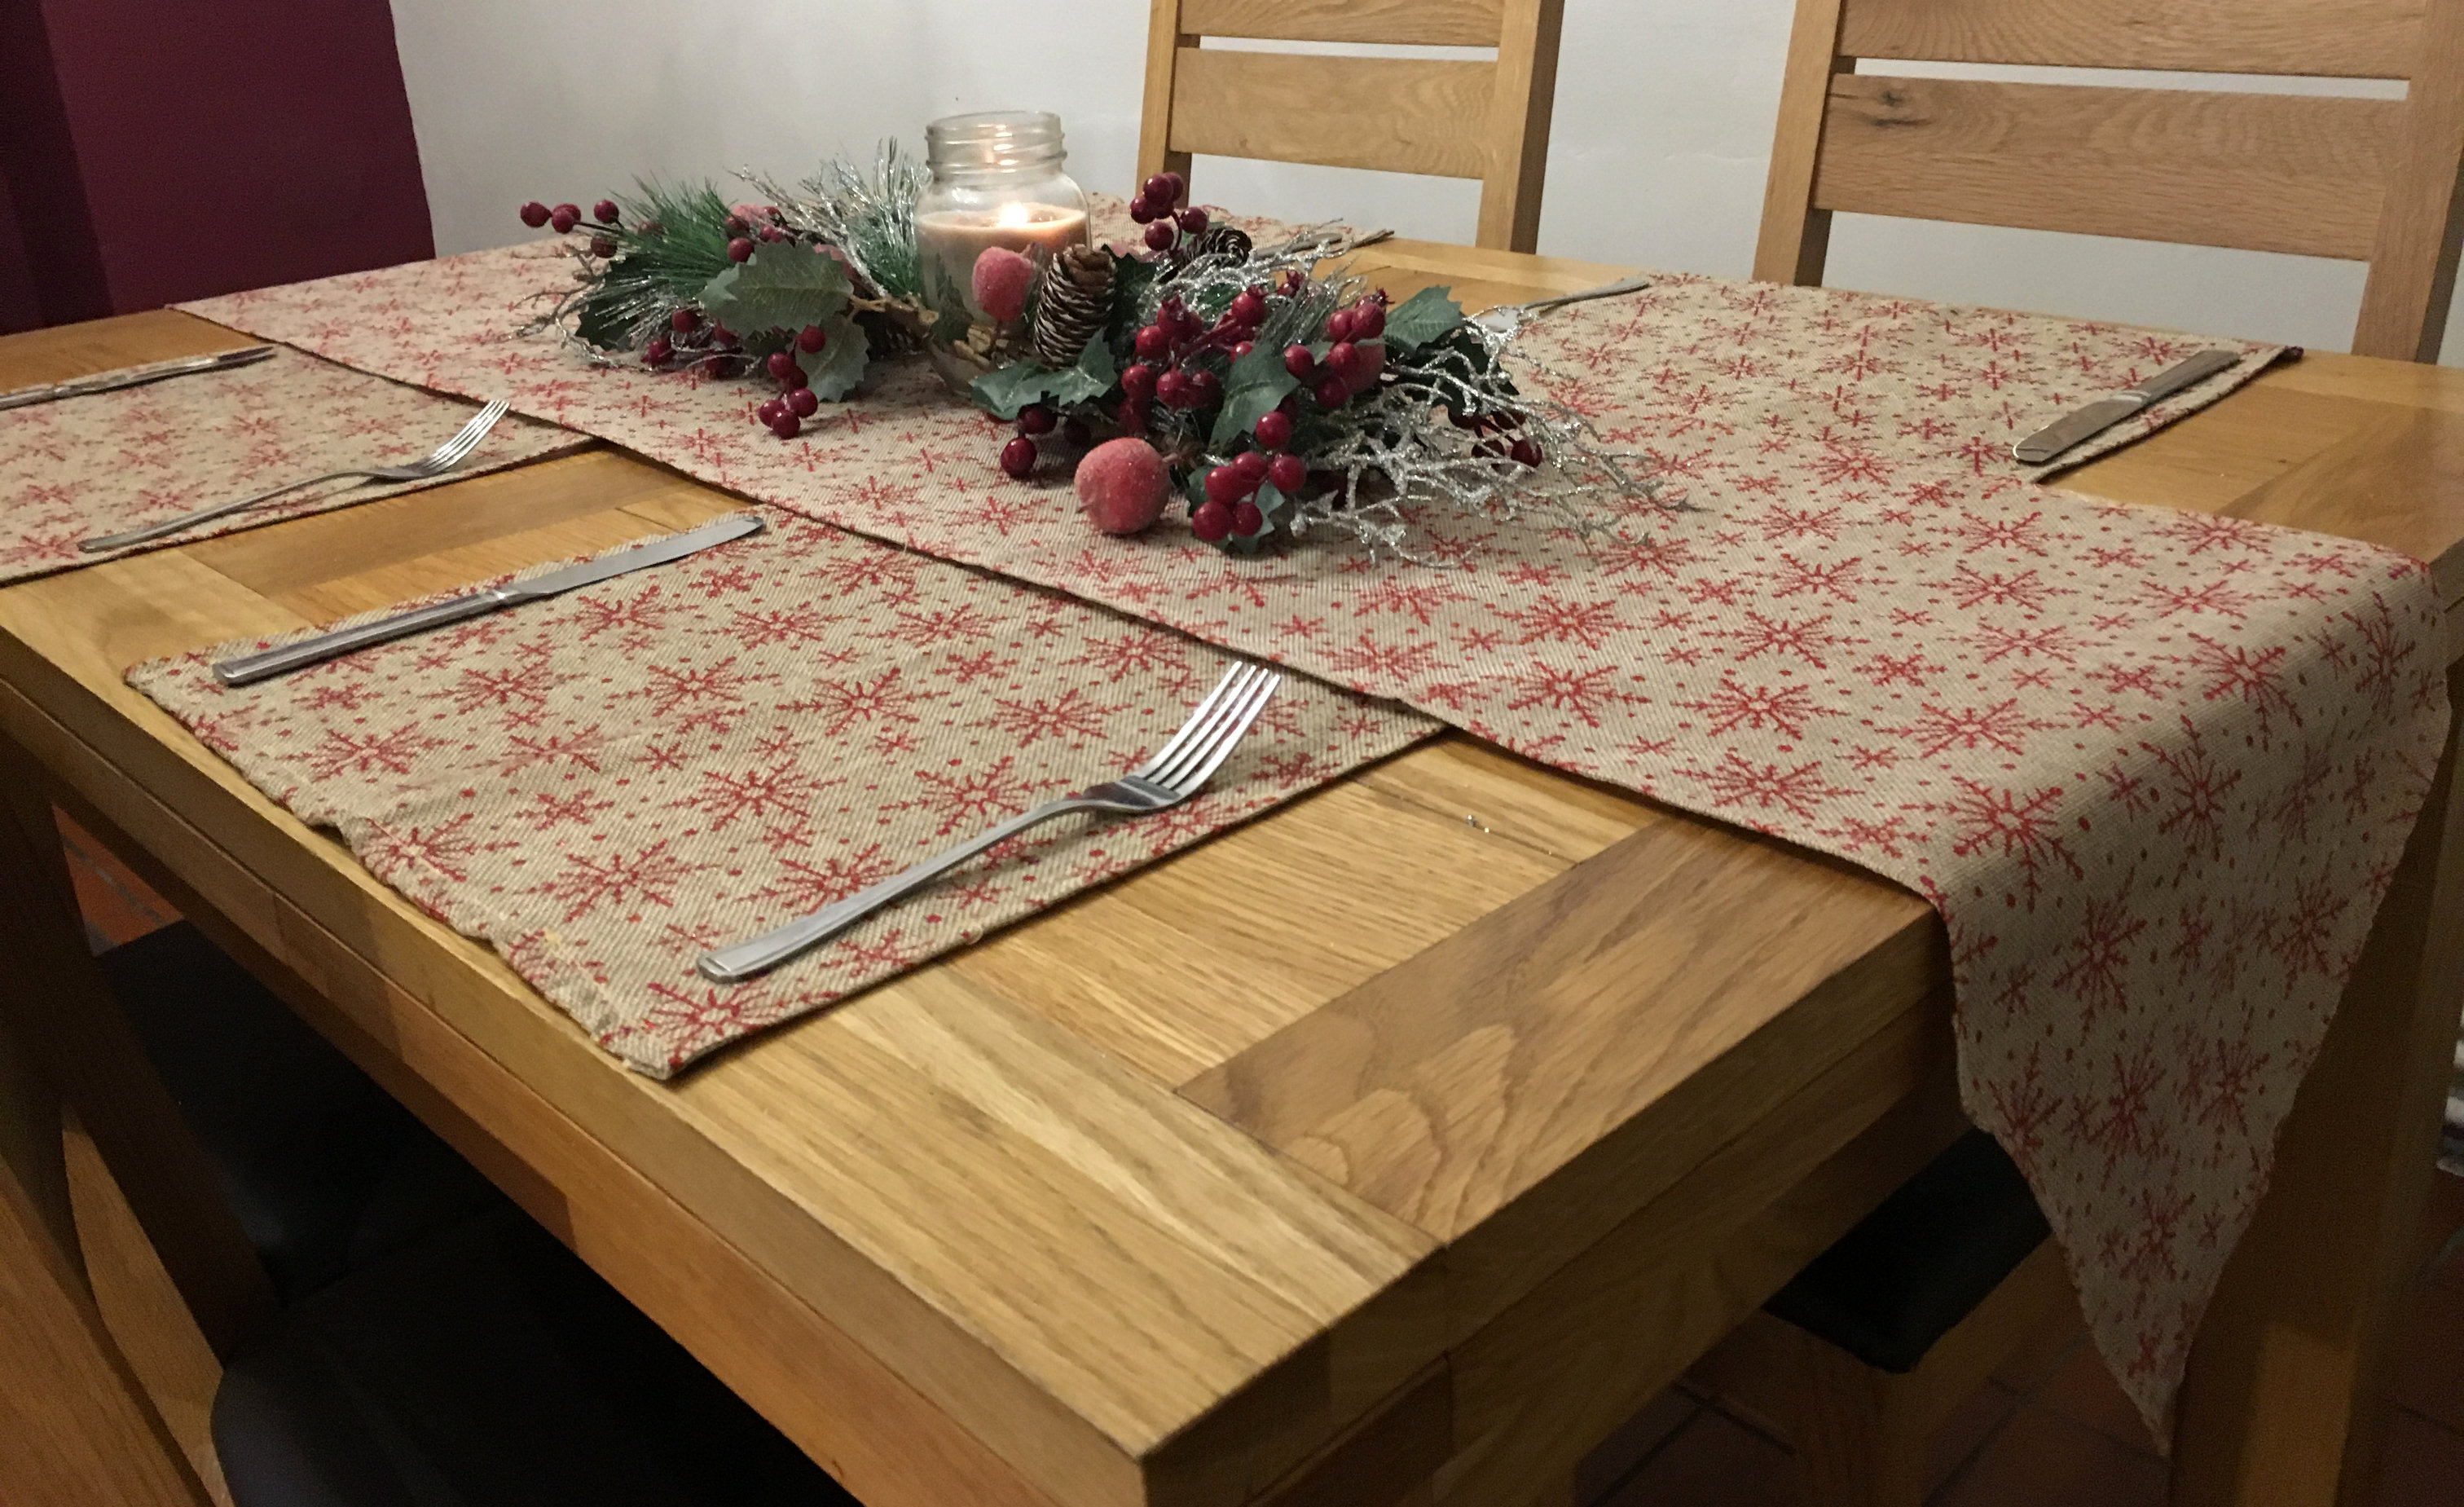 5-Piece-Christmas-Snowflake-Dinner-Table-Place-Mats-And-Runner-Set-Green-Red thumbnail 4